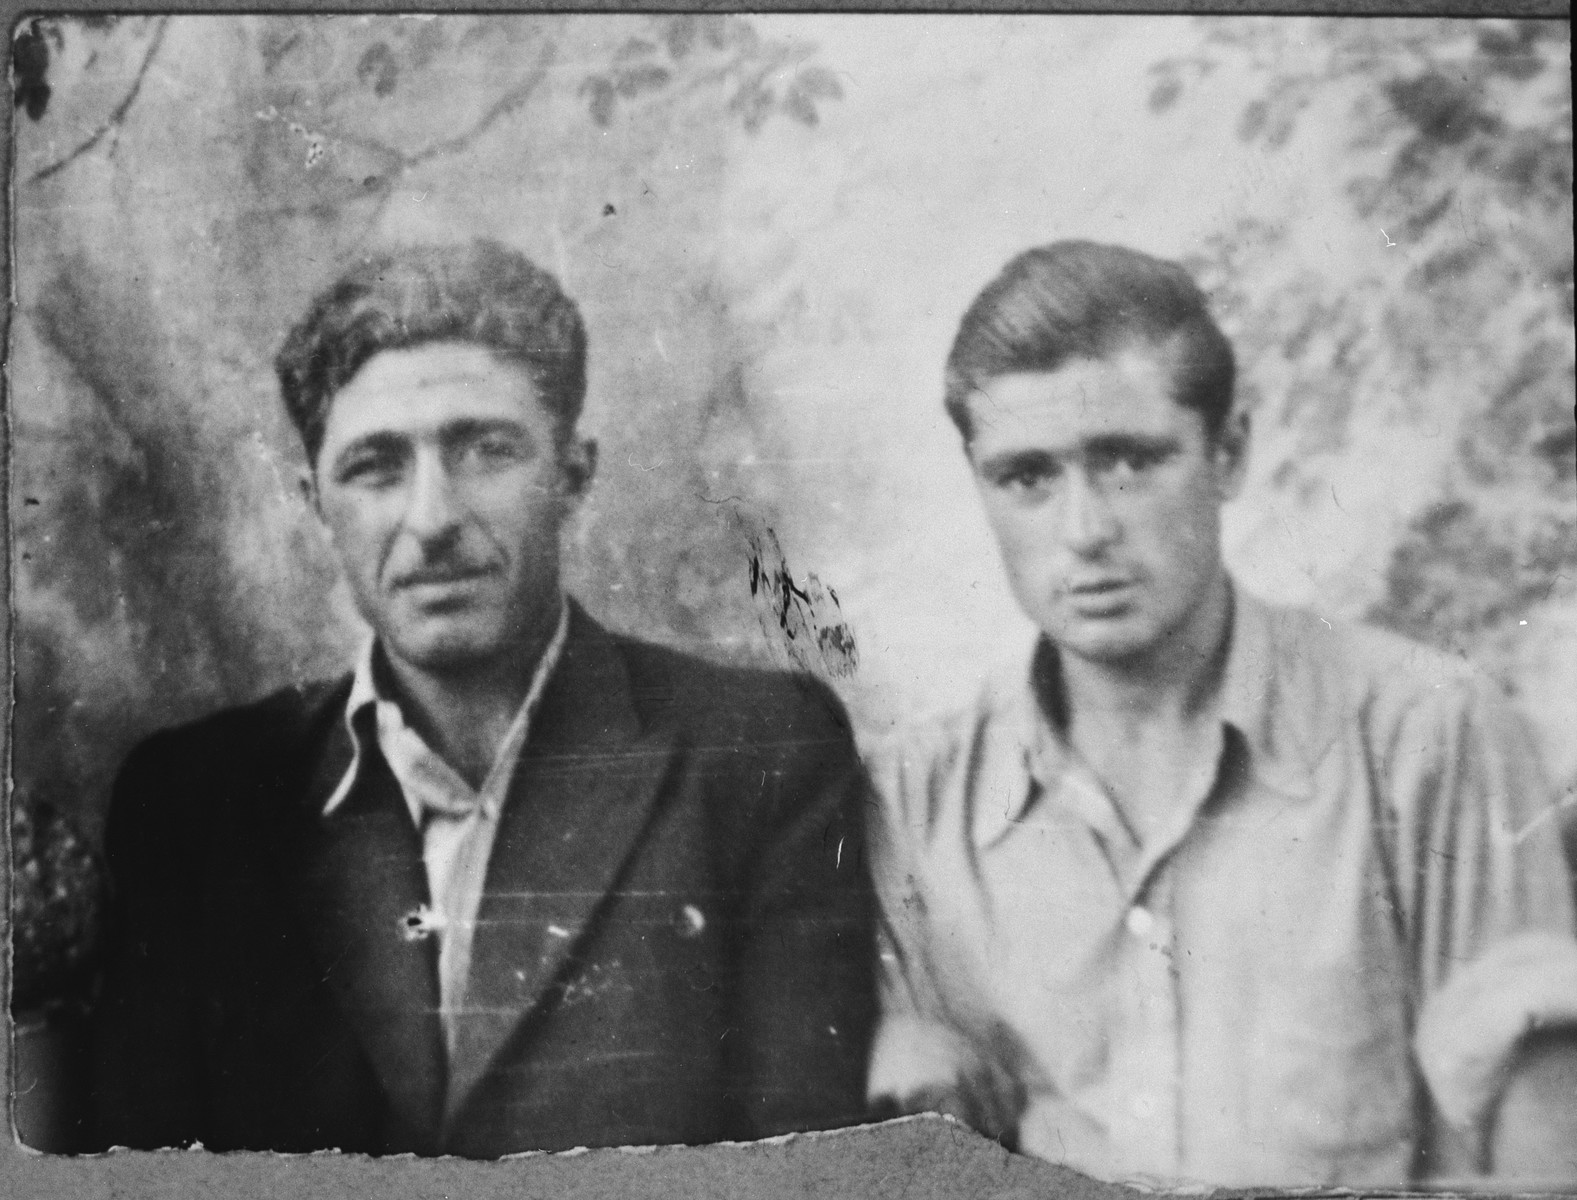 Portrait of Gabriel and Eli Mishulam, sons of Benzion Mishulam.  Gabriel was a laborer and Eli, a student.  They lived at Orizarska 7 in Bitola.